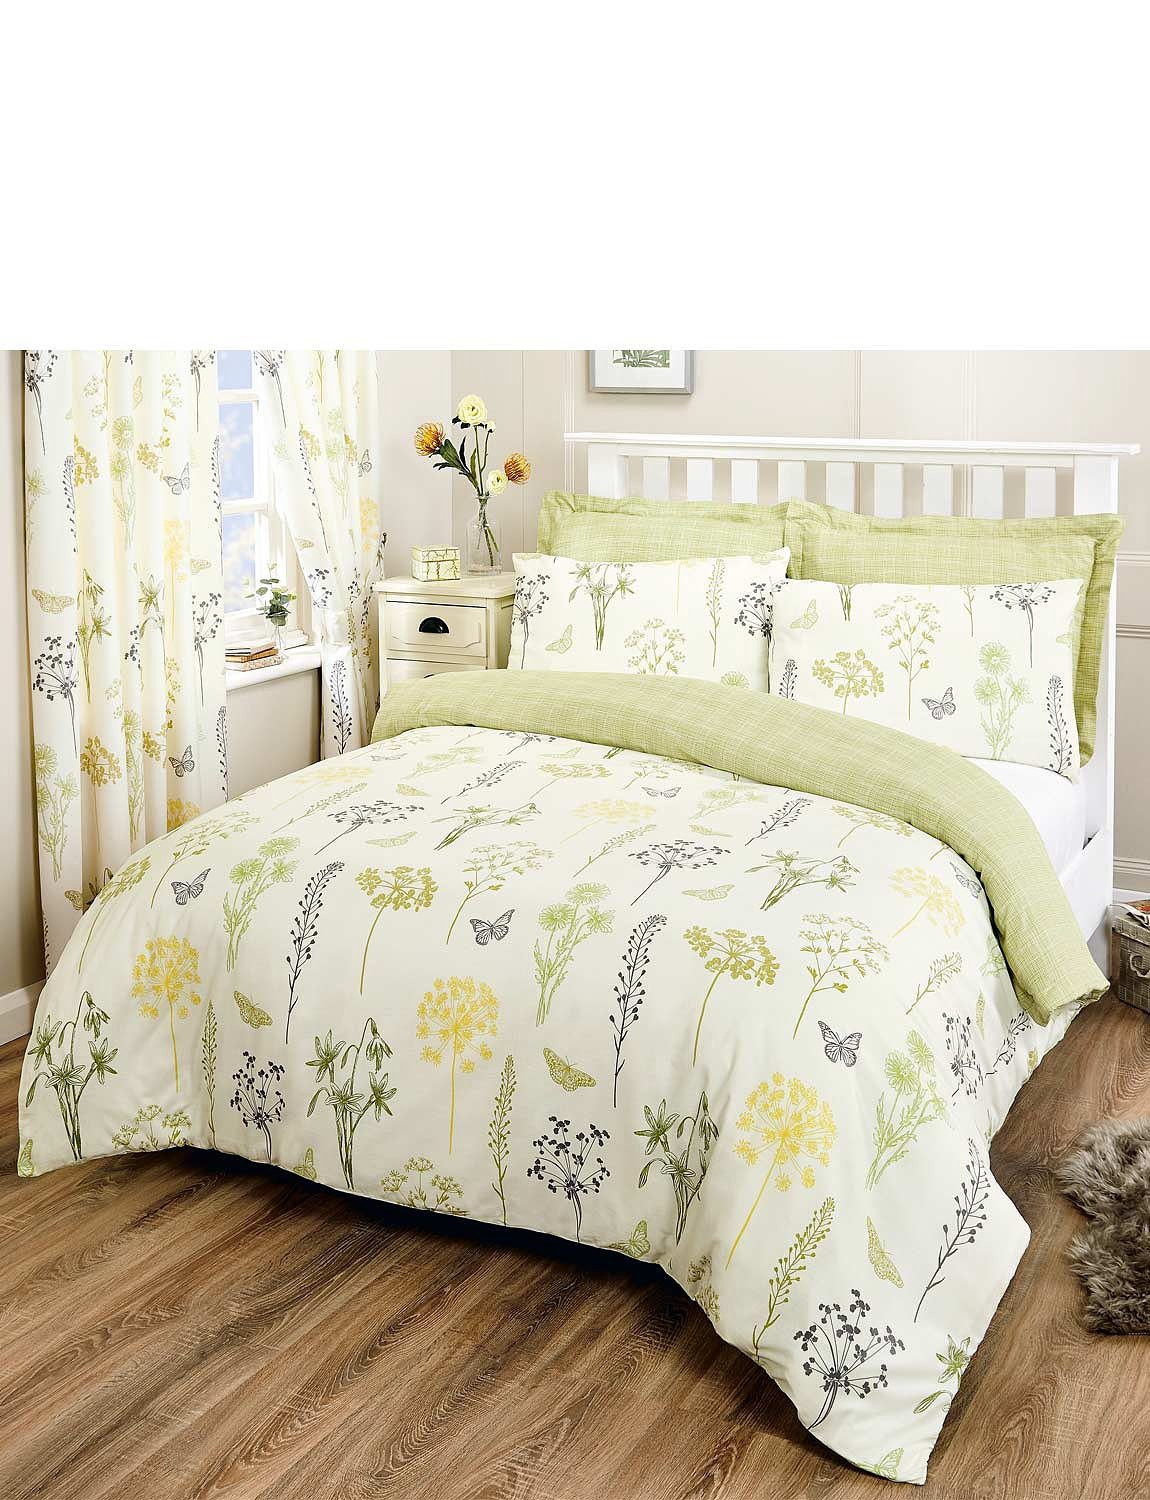 sale quilt free piece nina orders over embossed shipping on bath overstock product set bedding vcny